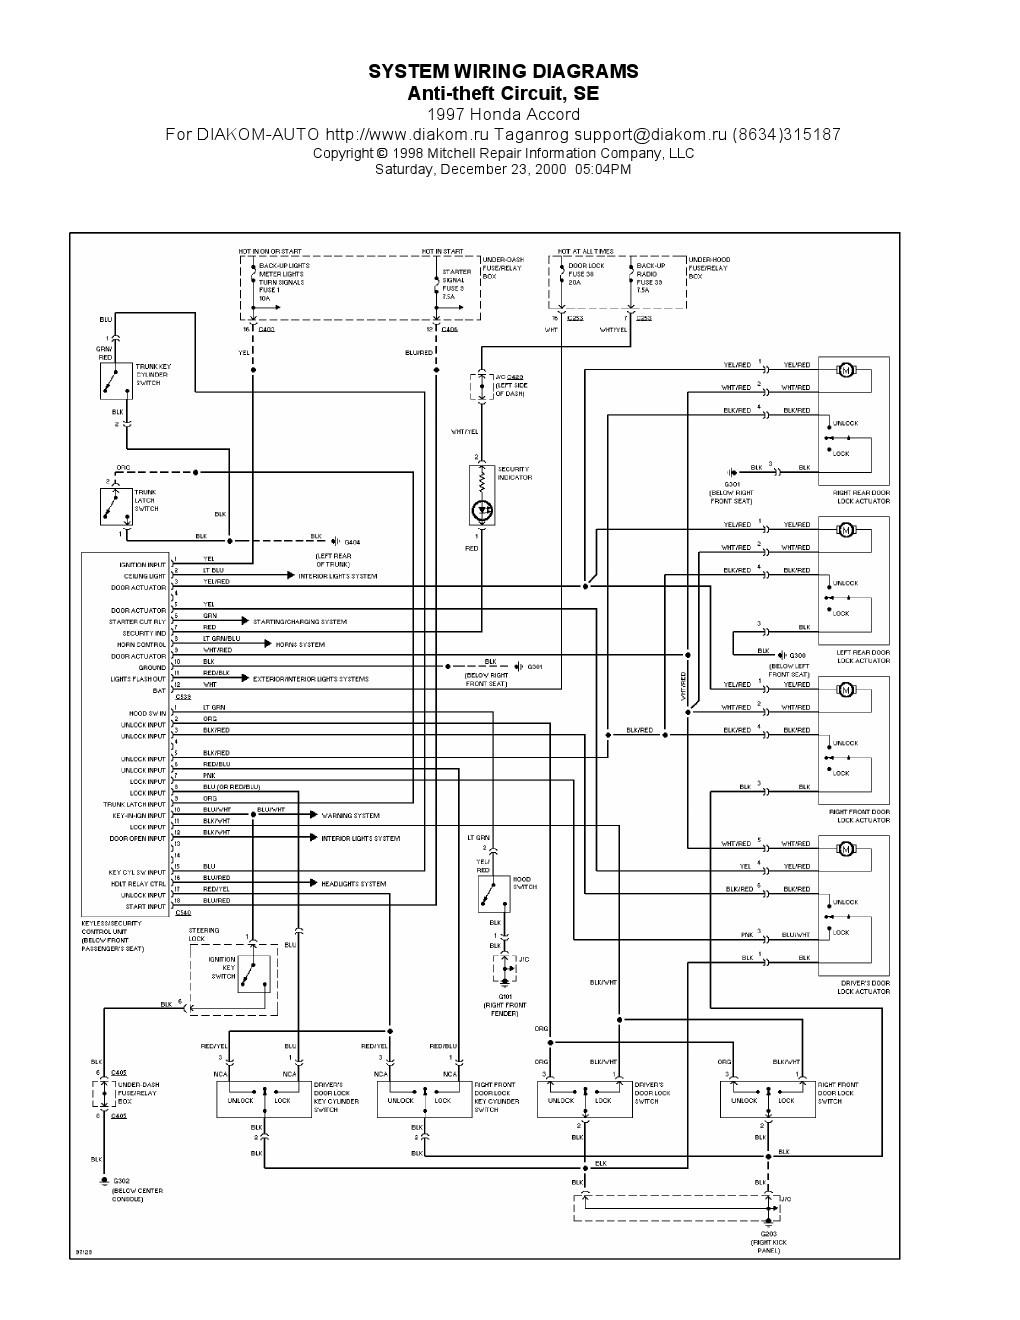 honda accord wiring diagram pictures to pin on pinterest